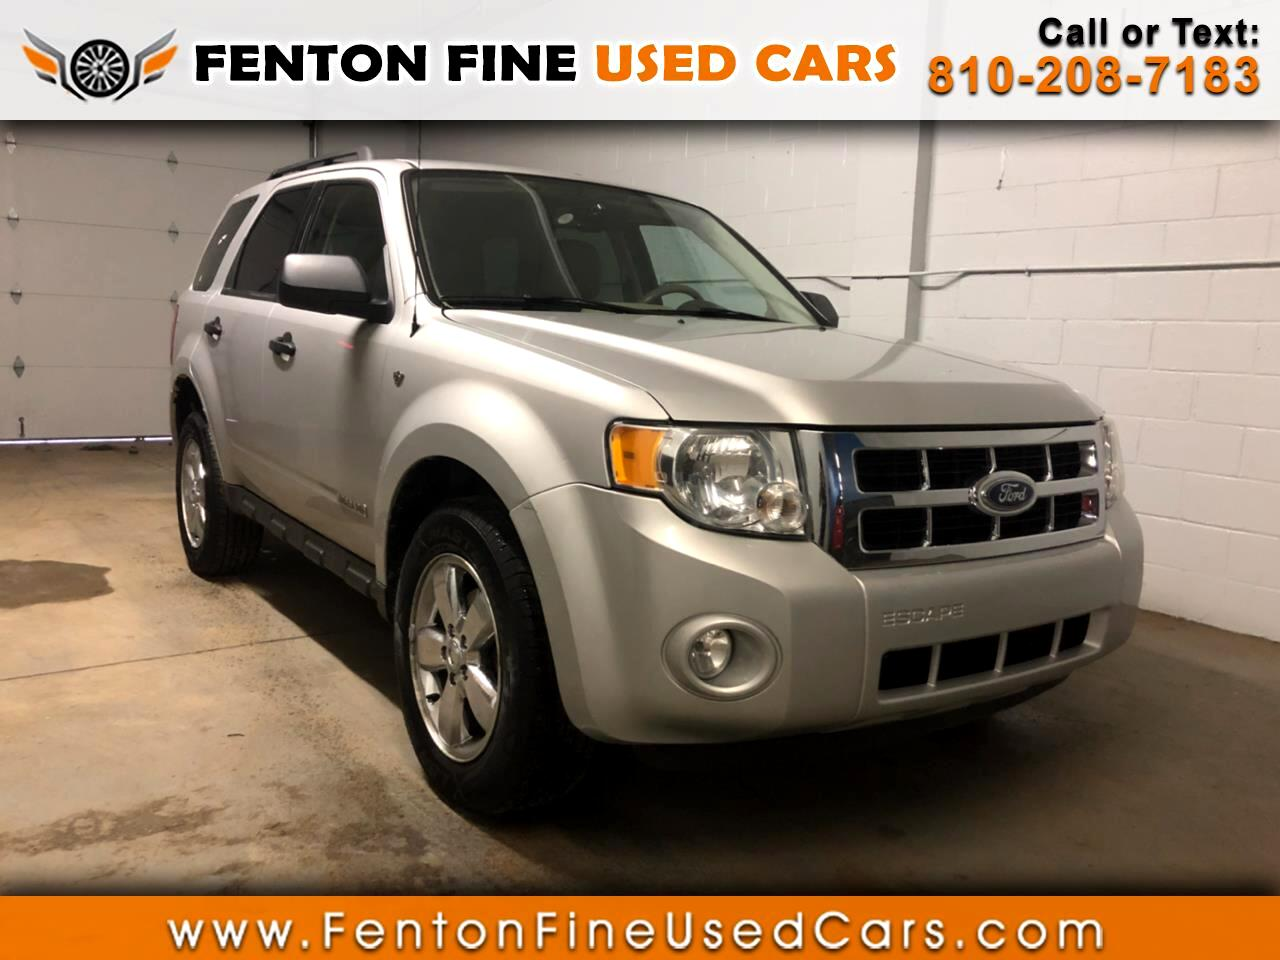 2008 Ford Escape FWD 4dr V6 Auto XLT